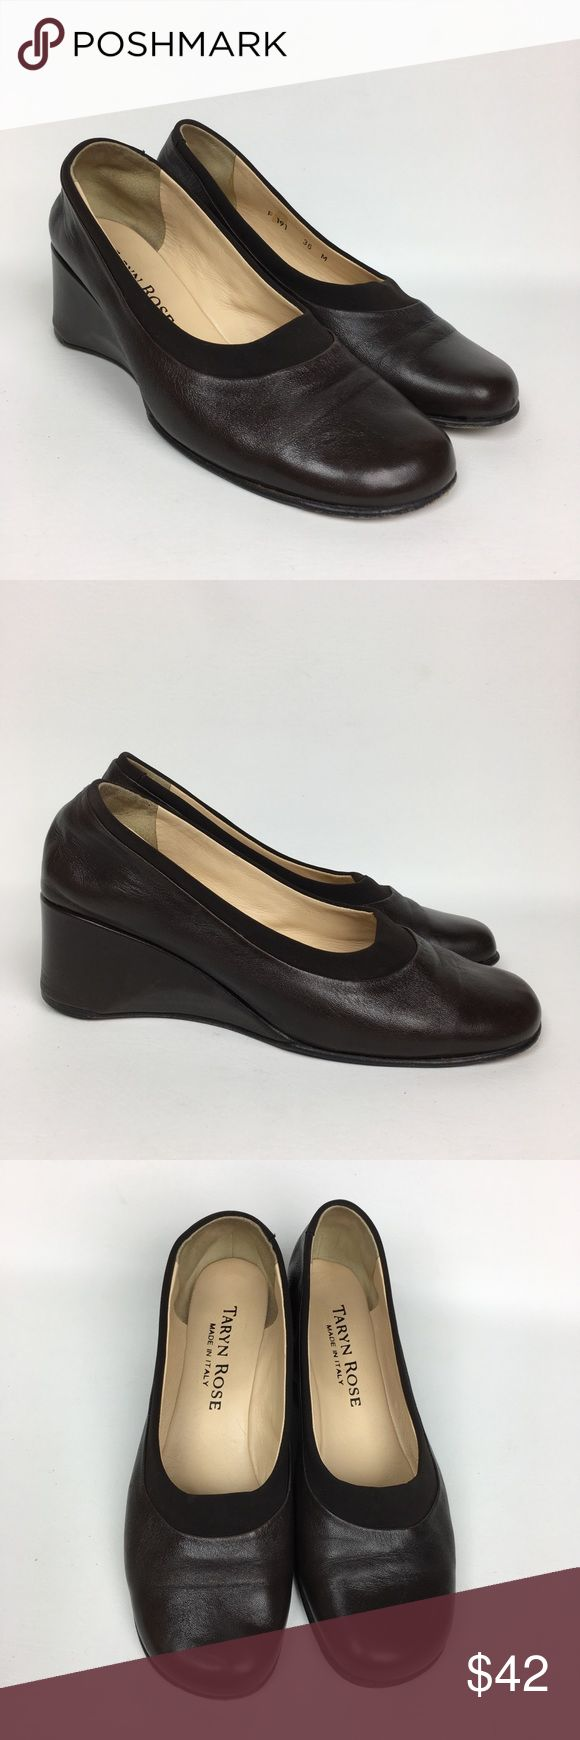 Taryn Rose Sz 36/5 M Brown Leather Wedge Loafers. Pre owned Good Used Condition. Taryn Rose Shoes Wedges